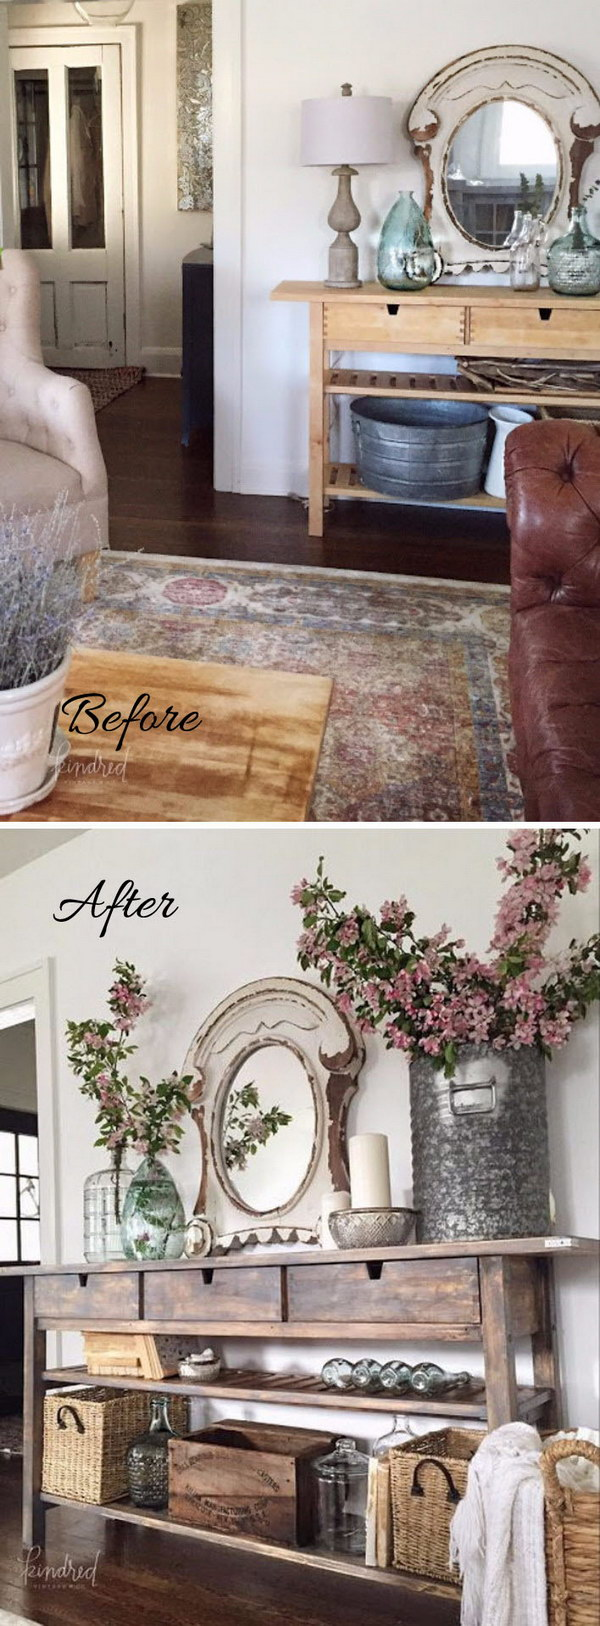 IKEA Norden Sideboard Makeover: A Distressed Console Adds A Rustic Vibe.